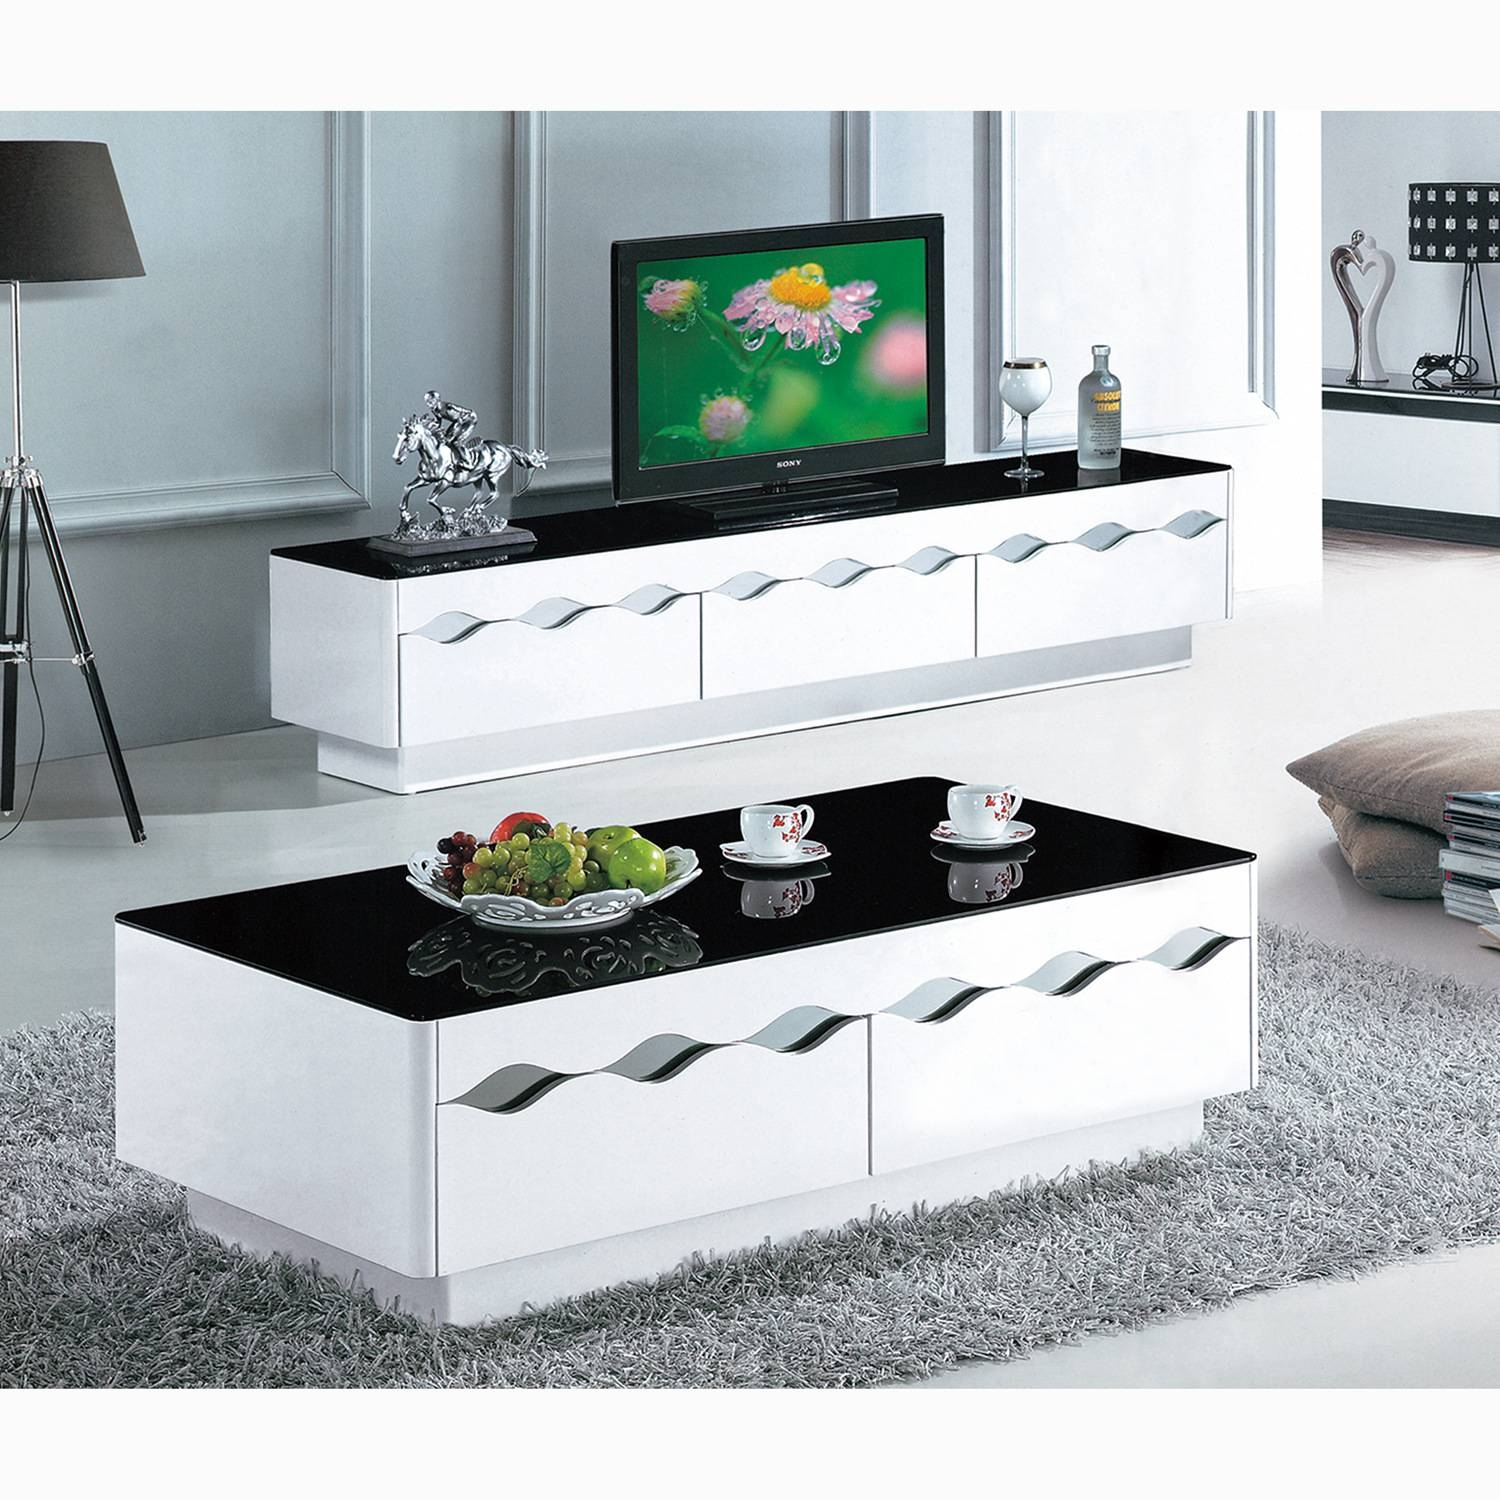 Black And White Paint Glass Coffee Table Living Room Furniture Tv in Tv Unit And Coffee Table Sets (Image 4 of 30)